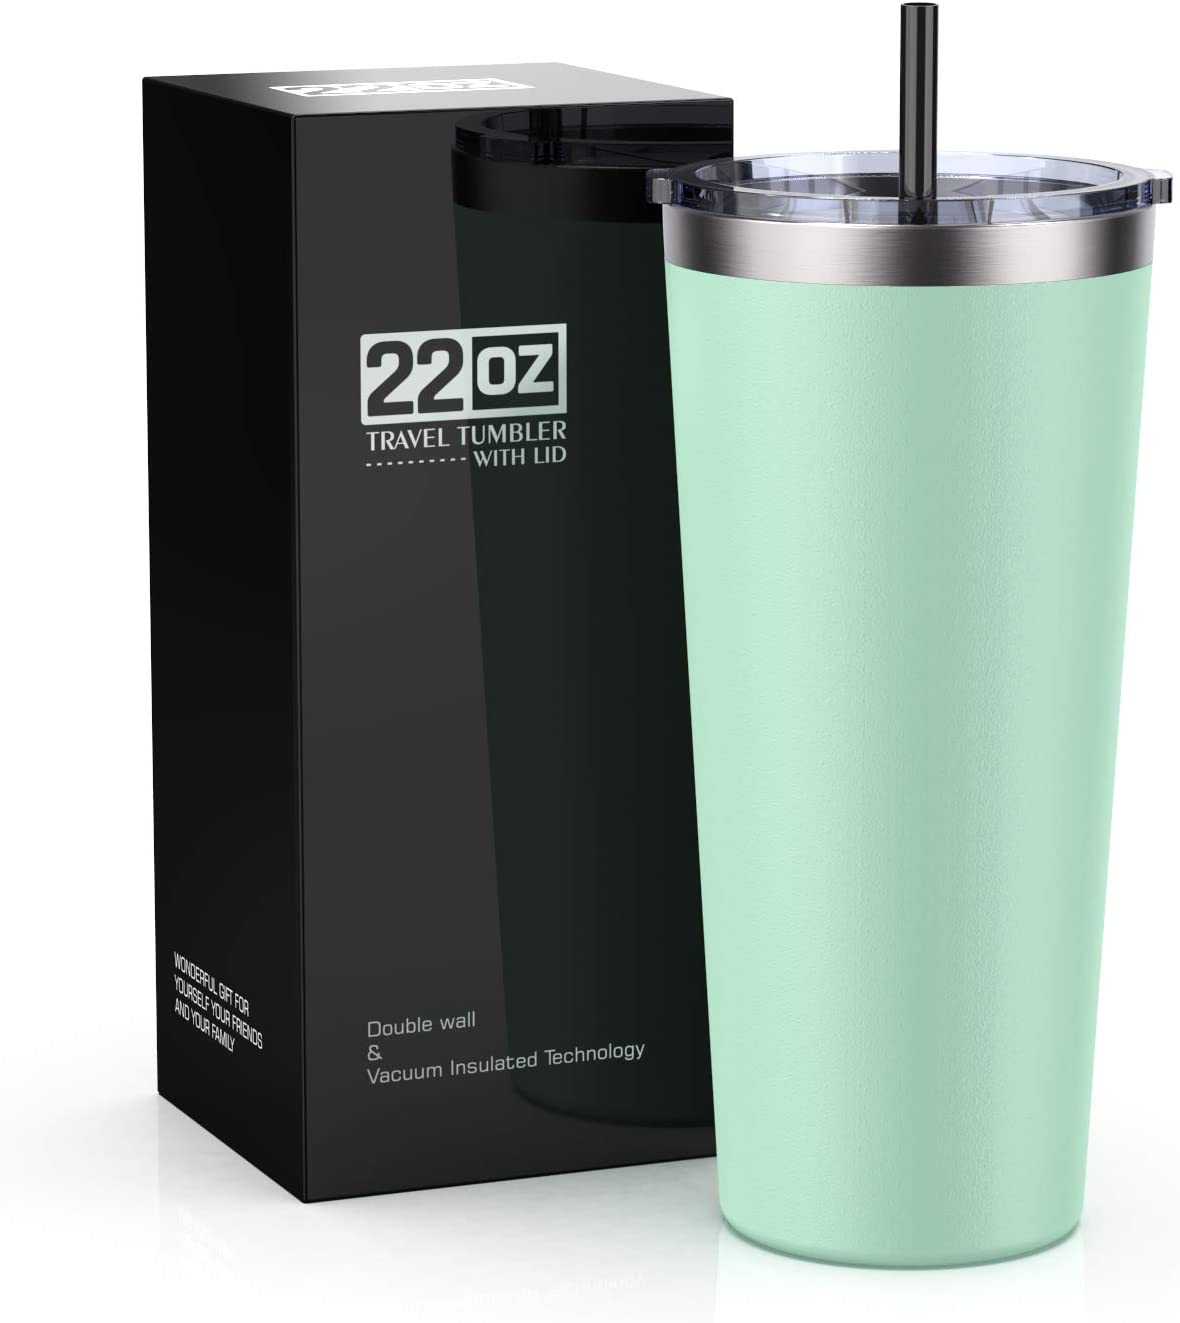 Bastwe 22oz Insulated Tumbler with Lid & Straw, Stainless Steel Coffee Cup, Double Wall Vacuum Insulated Travel Coffee Mug with Splash Proof Sliding Lid for Home & Office (Tiffany Blue)